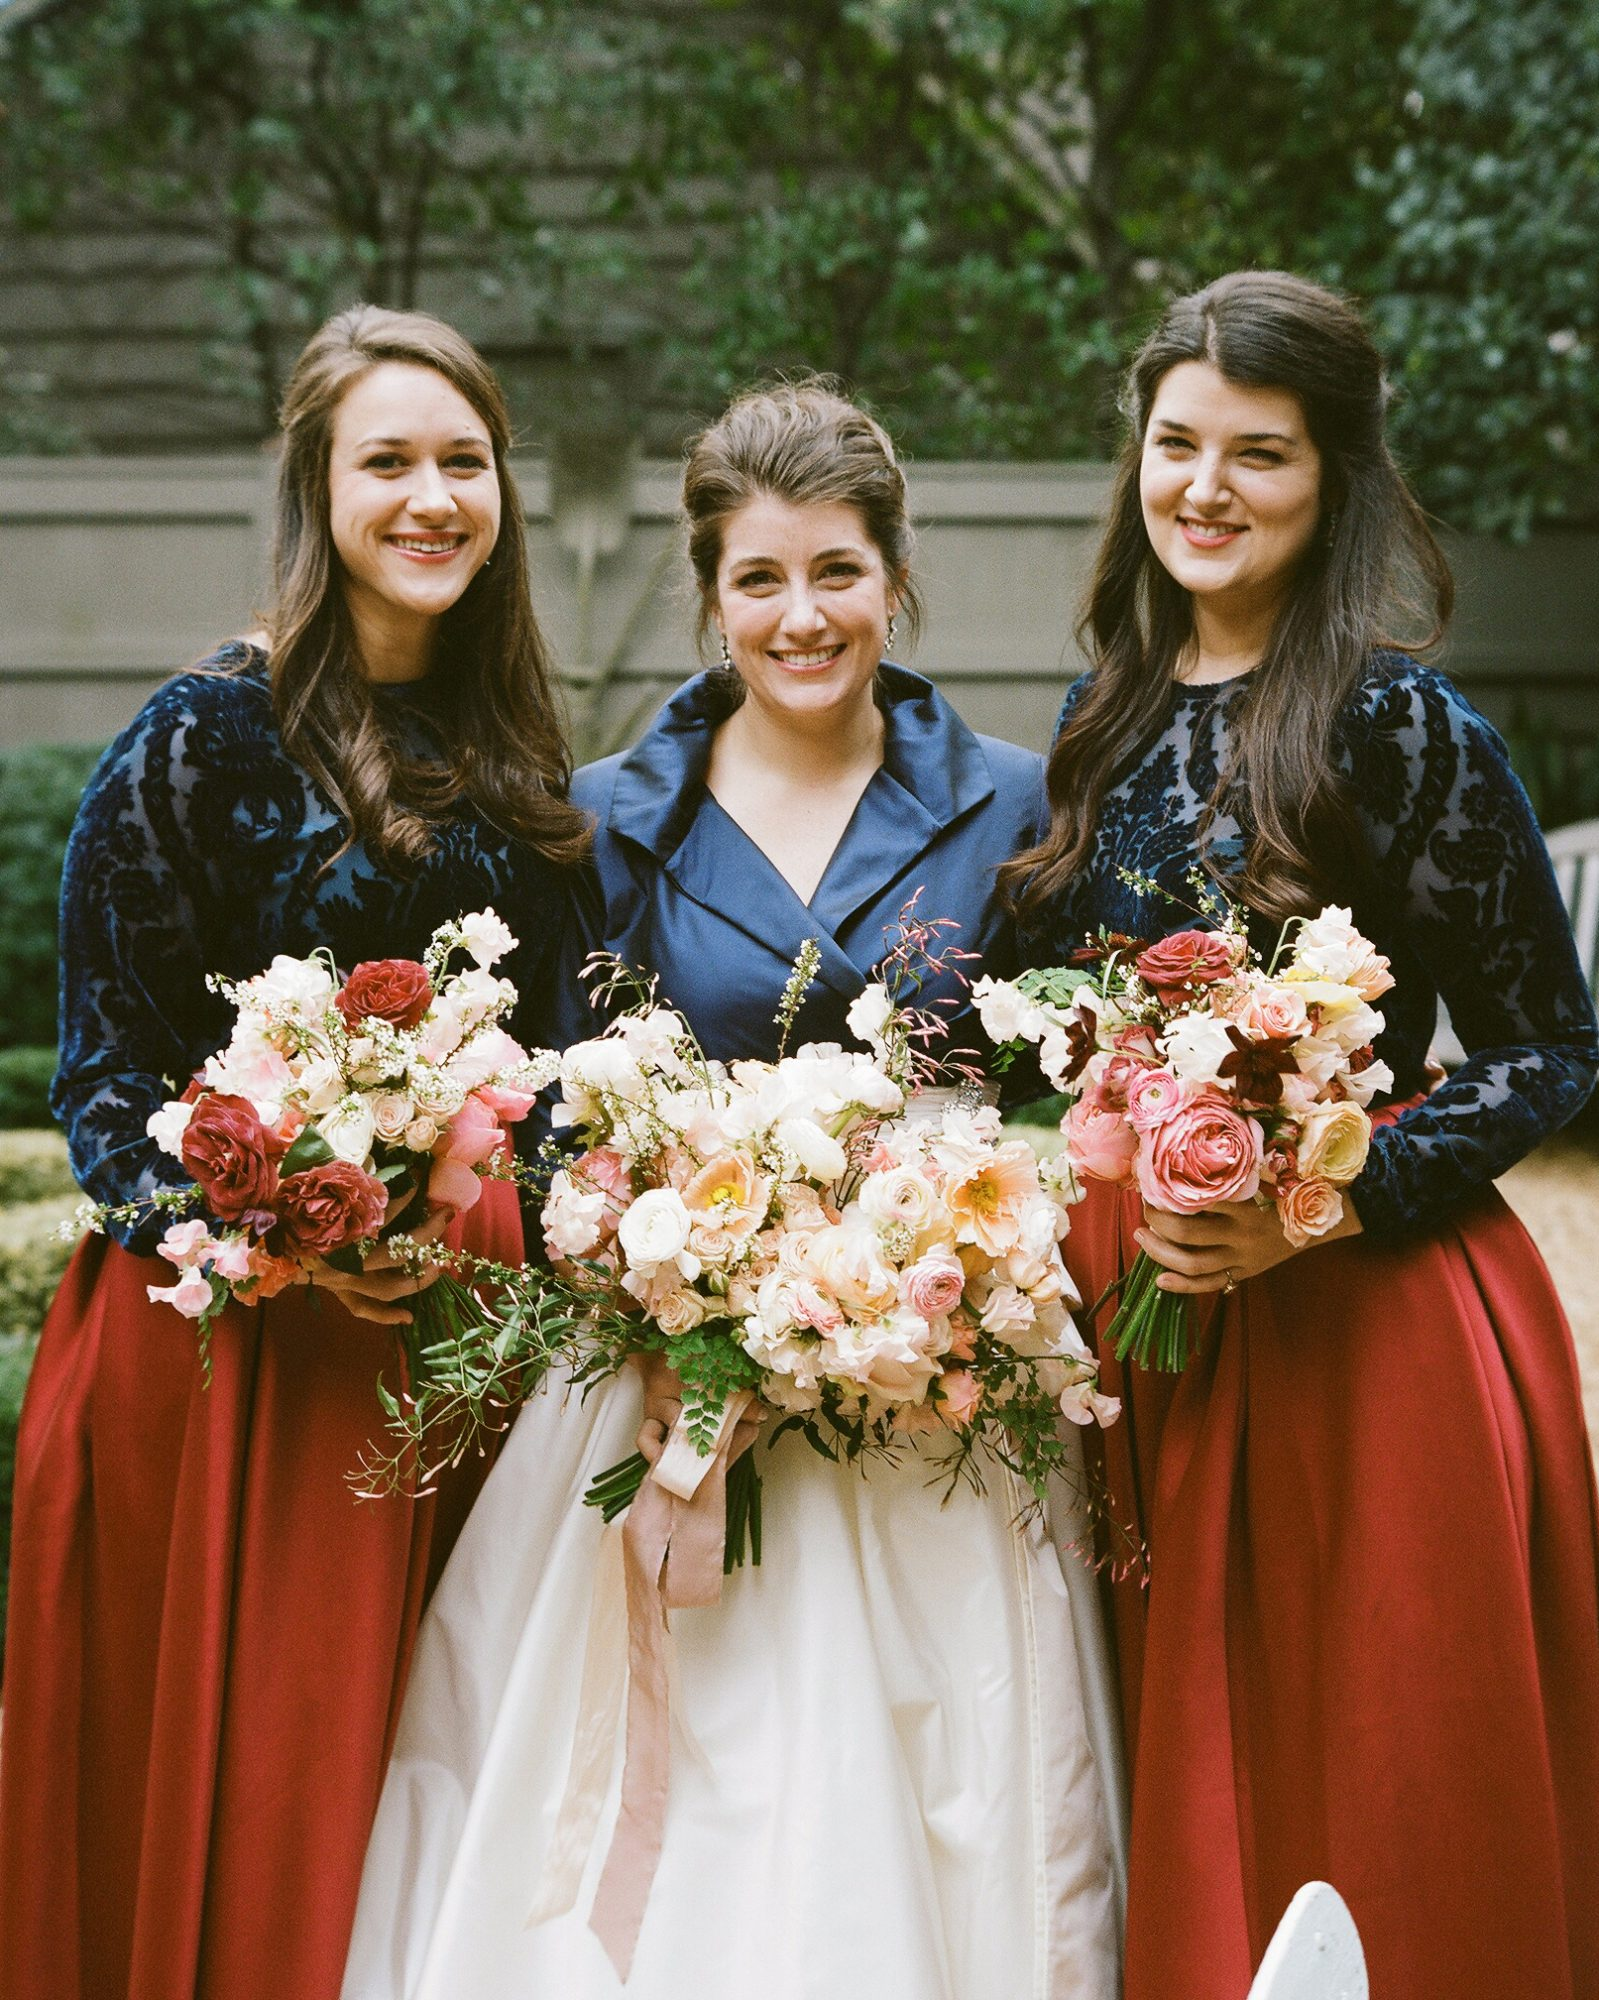 jane-ryan-wedding-bmaids-095-s111352-0714.jpg